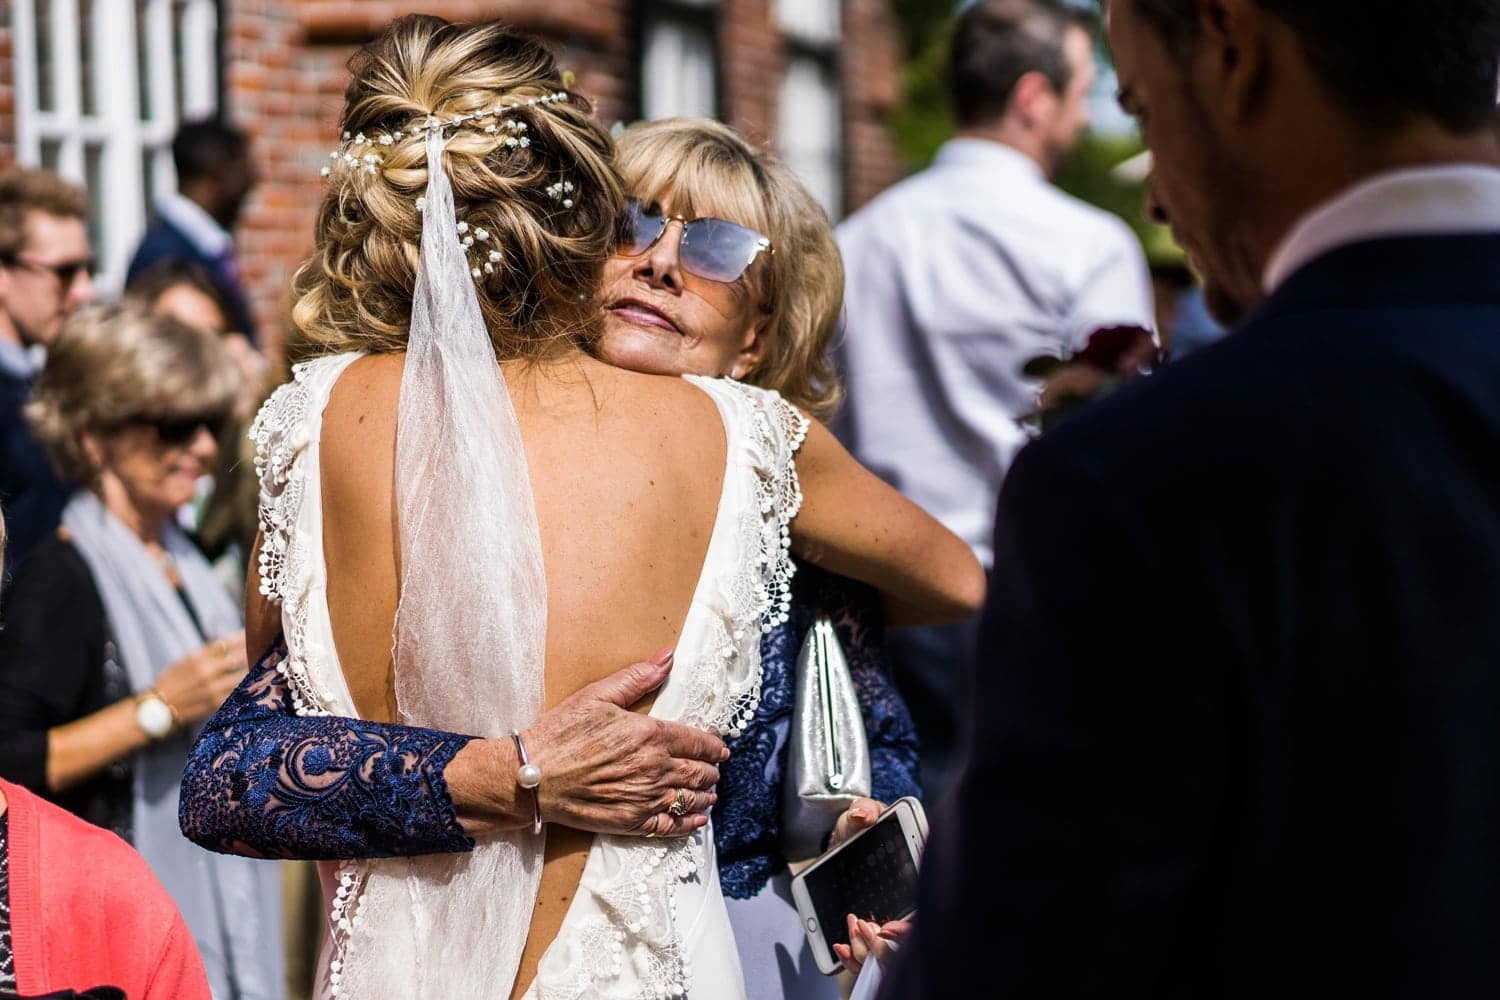 Mother of the groom hugs bride